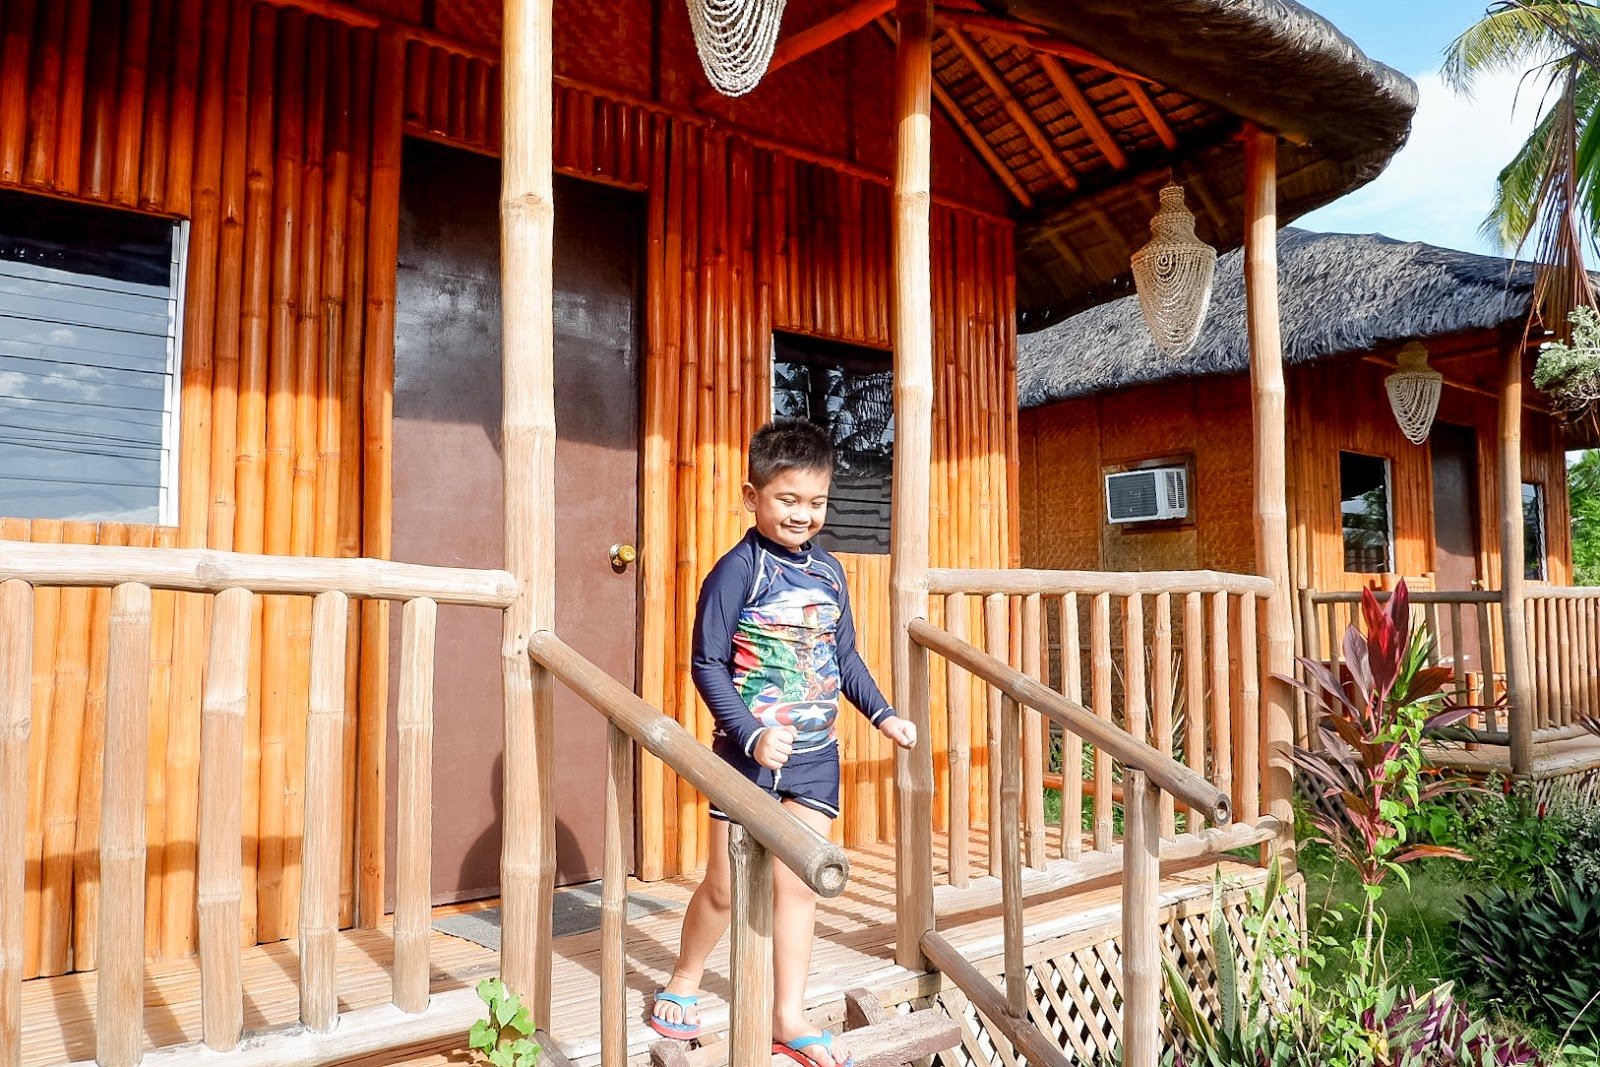 Staycation Series: Ananets Hotel in Bantayan Island